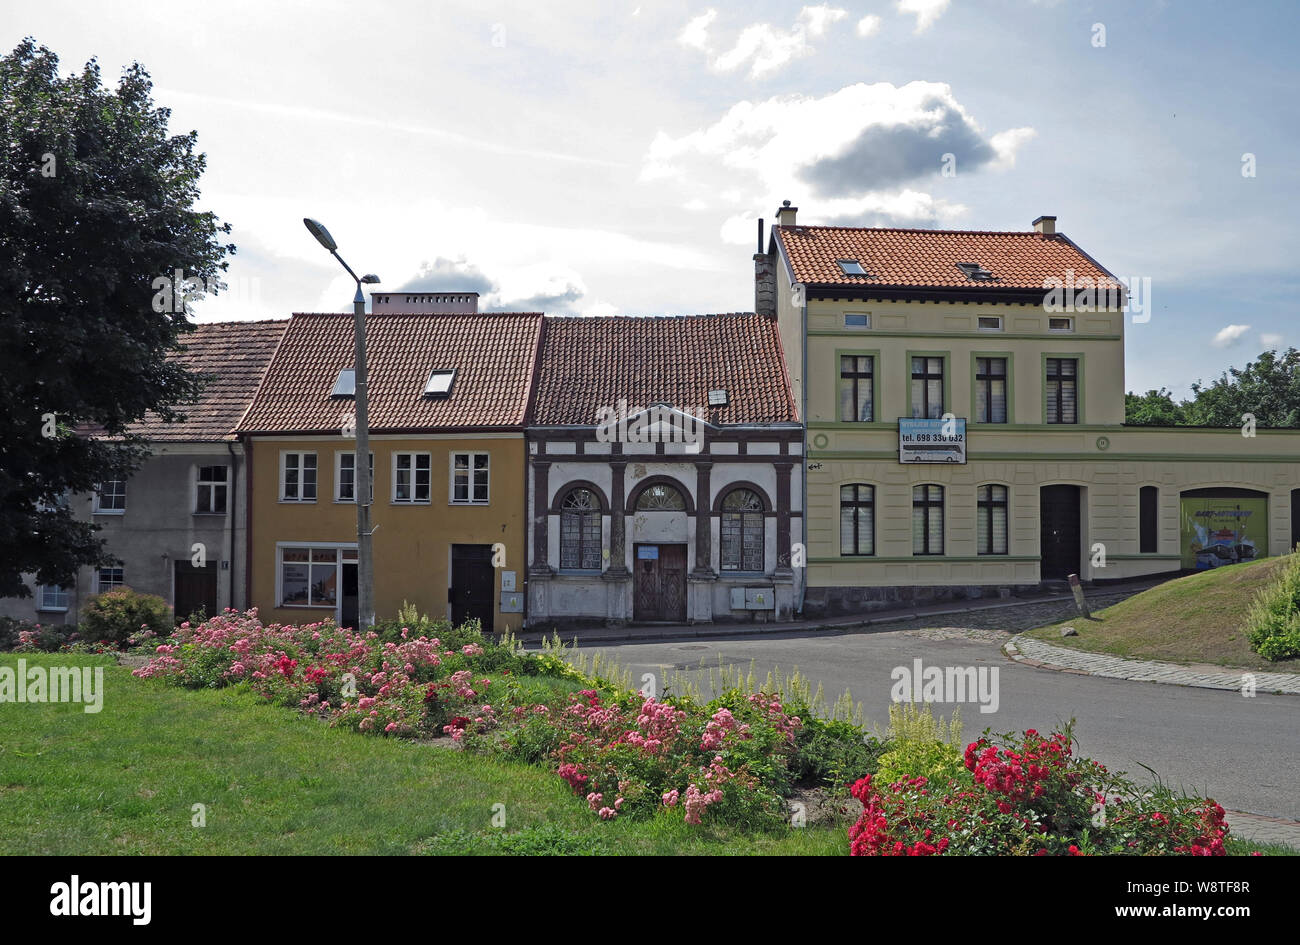 View on prewar civil houses in the city of Ketrzyn (Rastenburg) in the Polish Masurian (former East Prussia), recorded on 15.07.2019 | usage worldwide Stock Photo